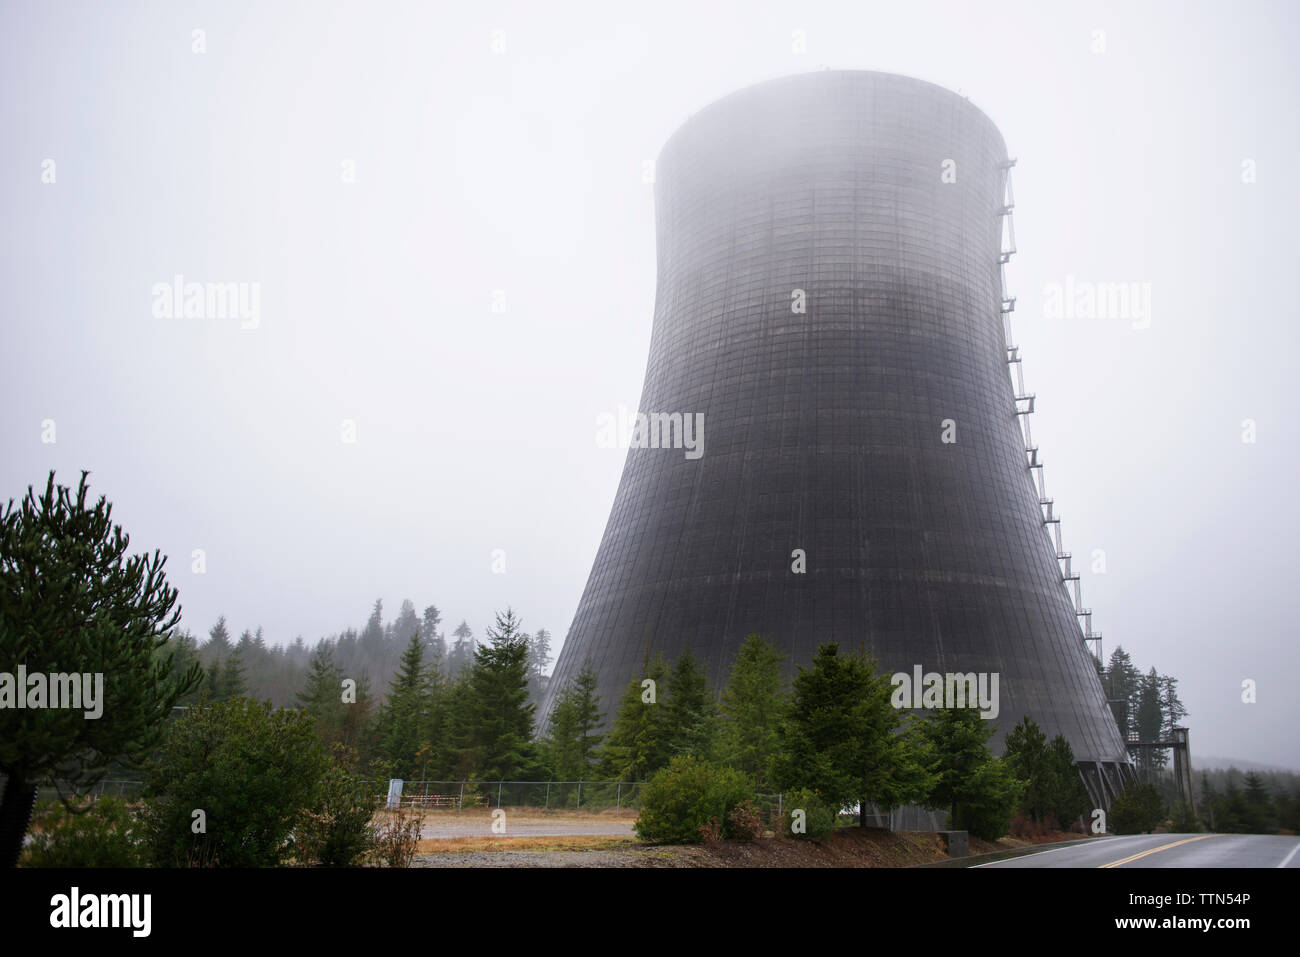 Low angle view of nuclear reactor in foggy weather against sky - Stock Image